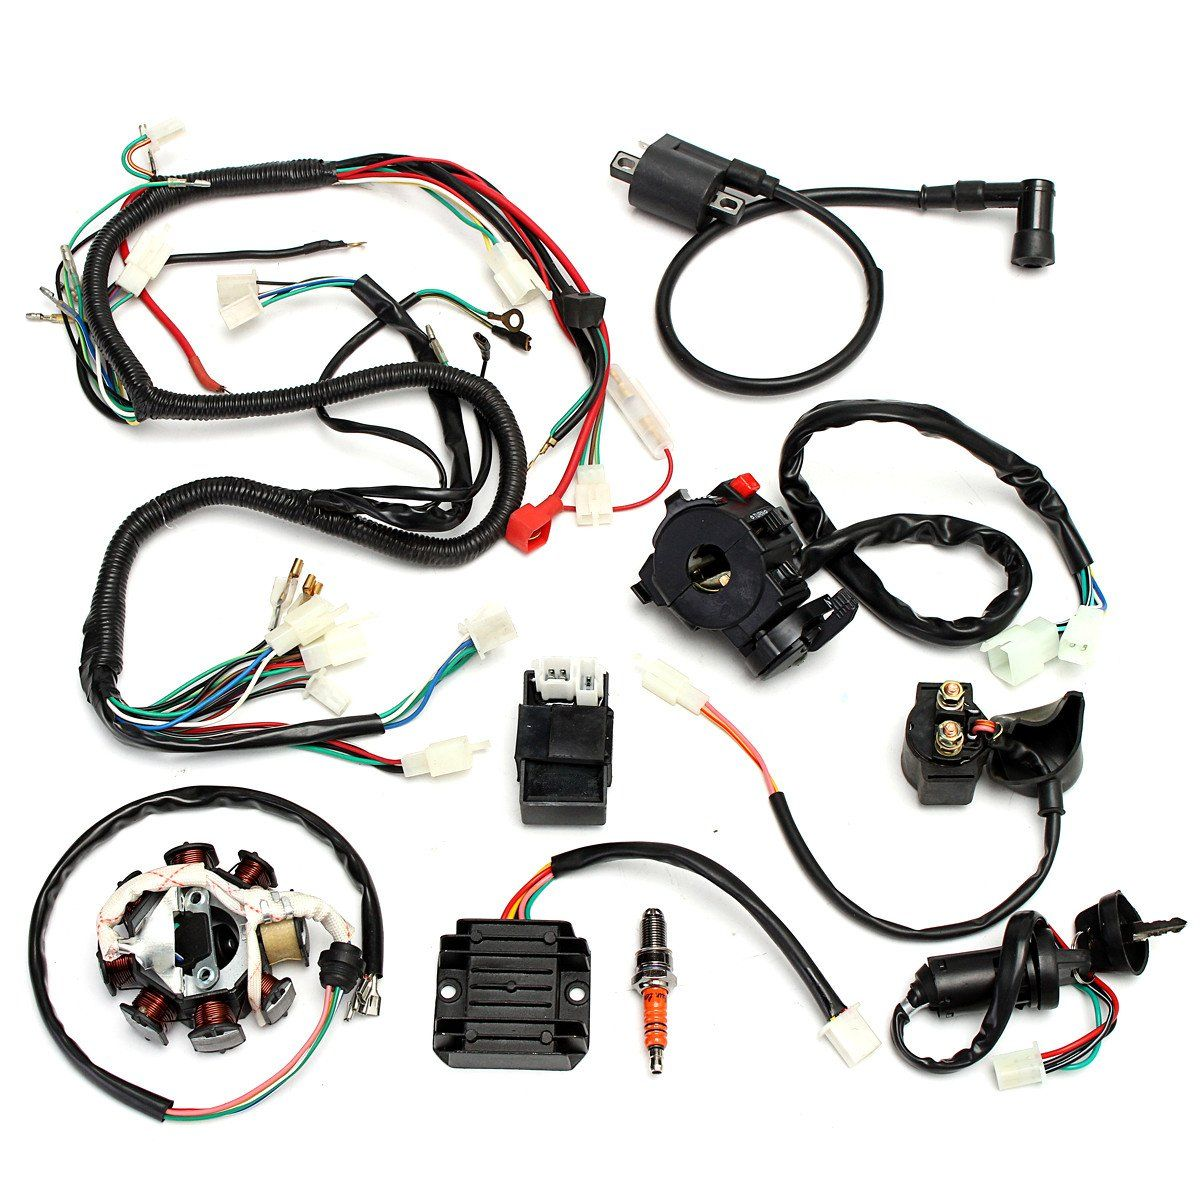 hight resolution of coolster 110cc atv parts furthermore 110cc pit bike engine diagram along with coolster 125cc atv wiring diagram and razor e300 stator 150cc tao tao